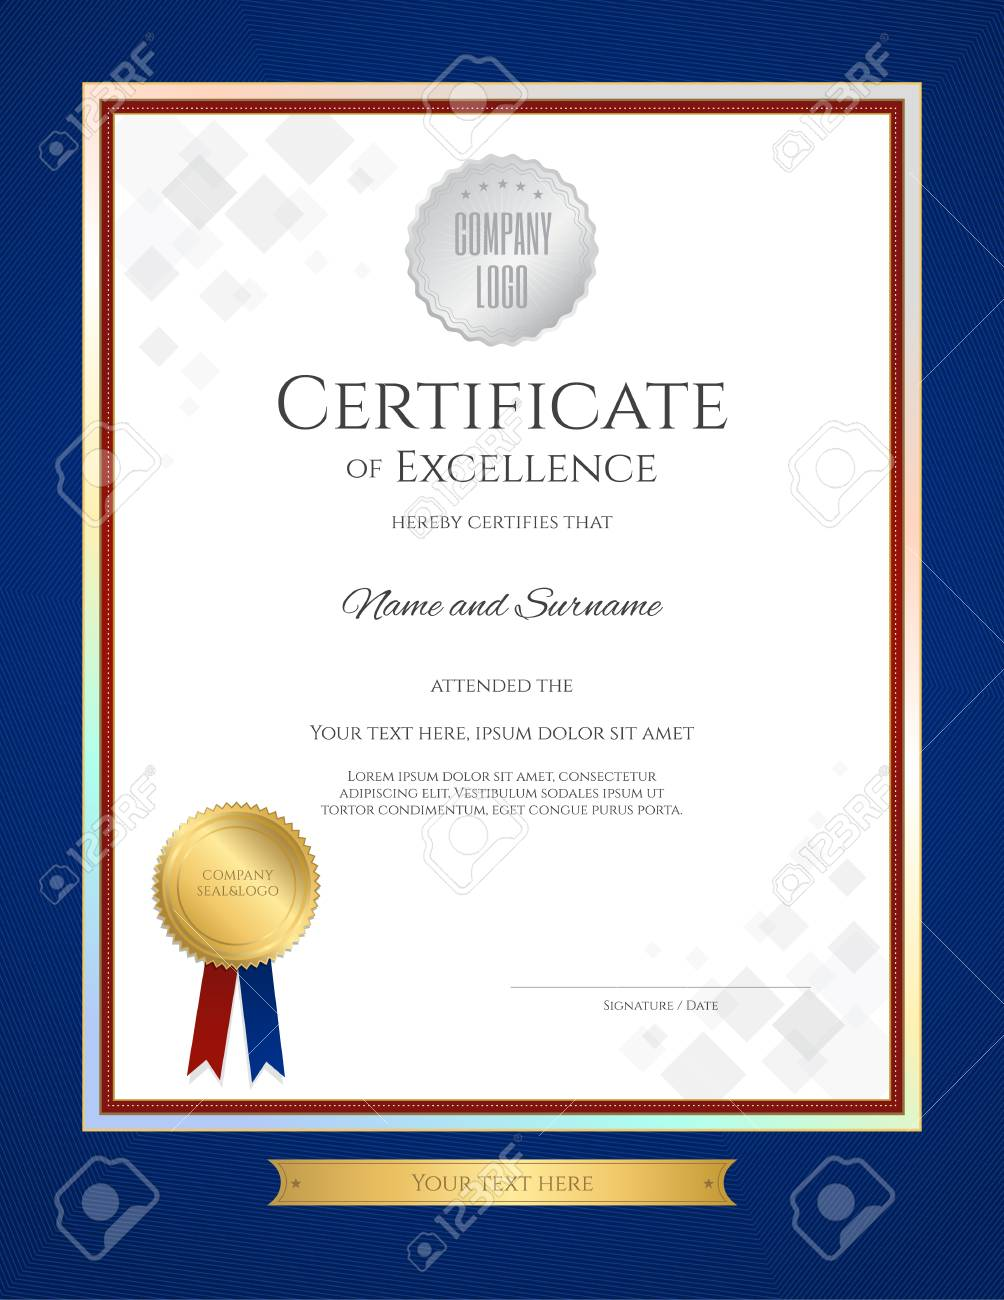 Certificate of excellence template in portrait with blue border certificate of excellence template in portrait with blue border and gold ribbon tag stock vector alramifo Image collections